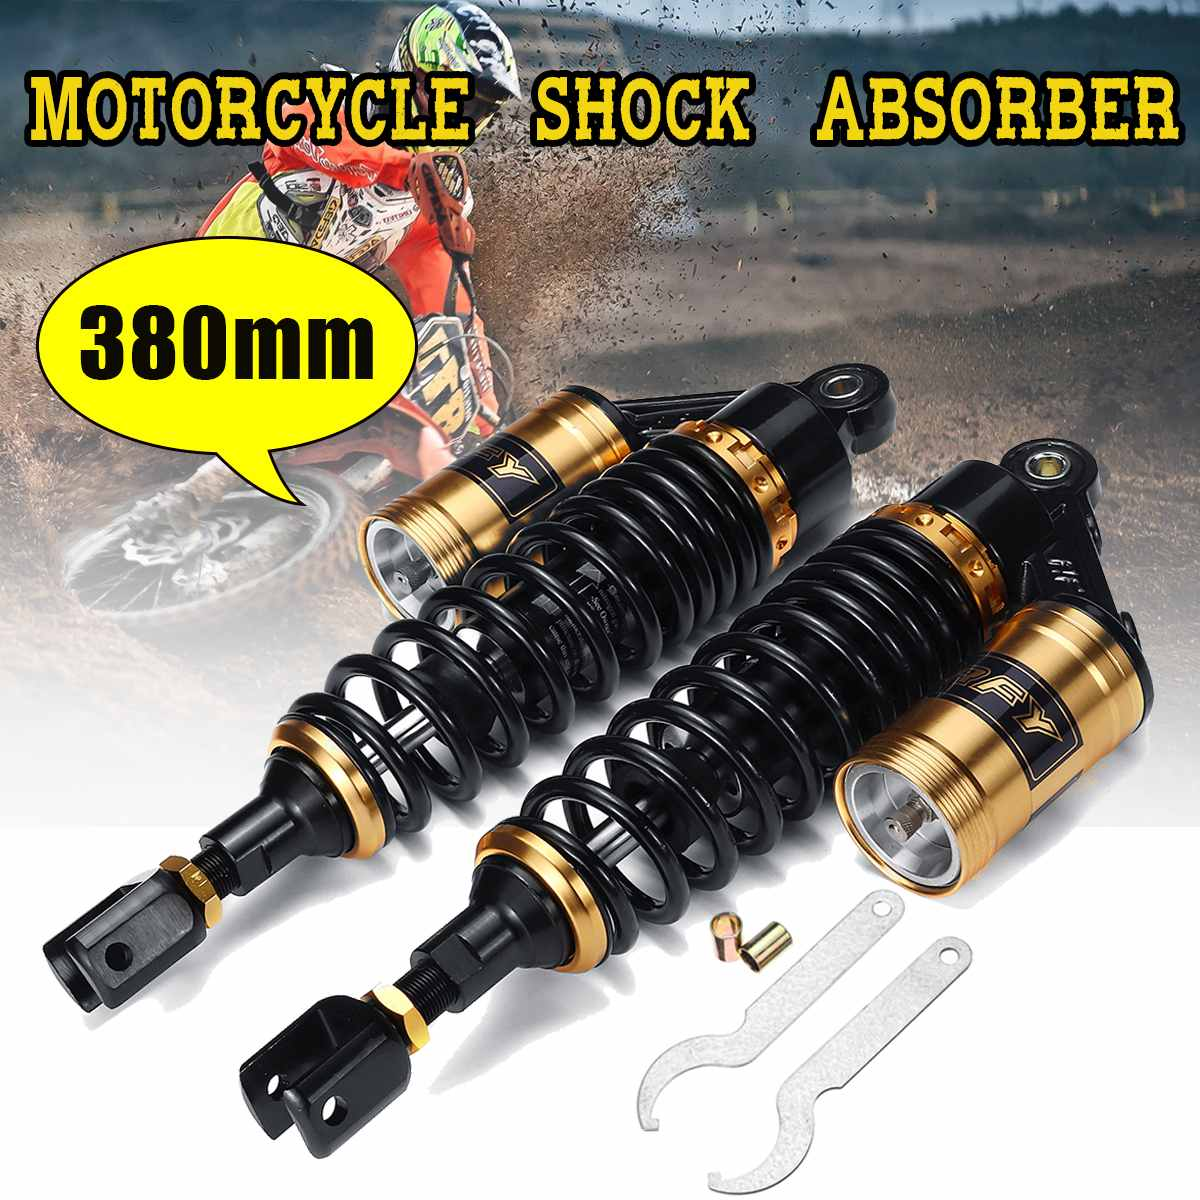 Pair 15 380mm Motorcycle Rear Air Shock Absorber Suspension For Honda/Yamaha/Suzuki Scooter ATV QuadPair 15 380mm Motorcycle Rear Air Shock Absorber Suspension For Honda/Yamaha/Suzuki Scooter ATV Quad